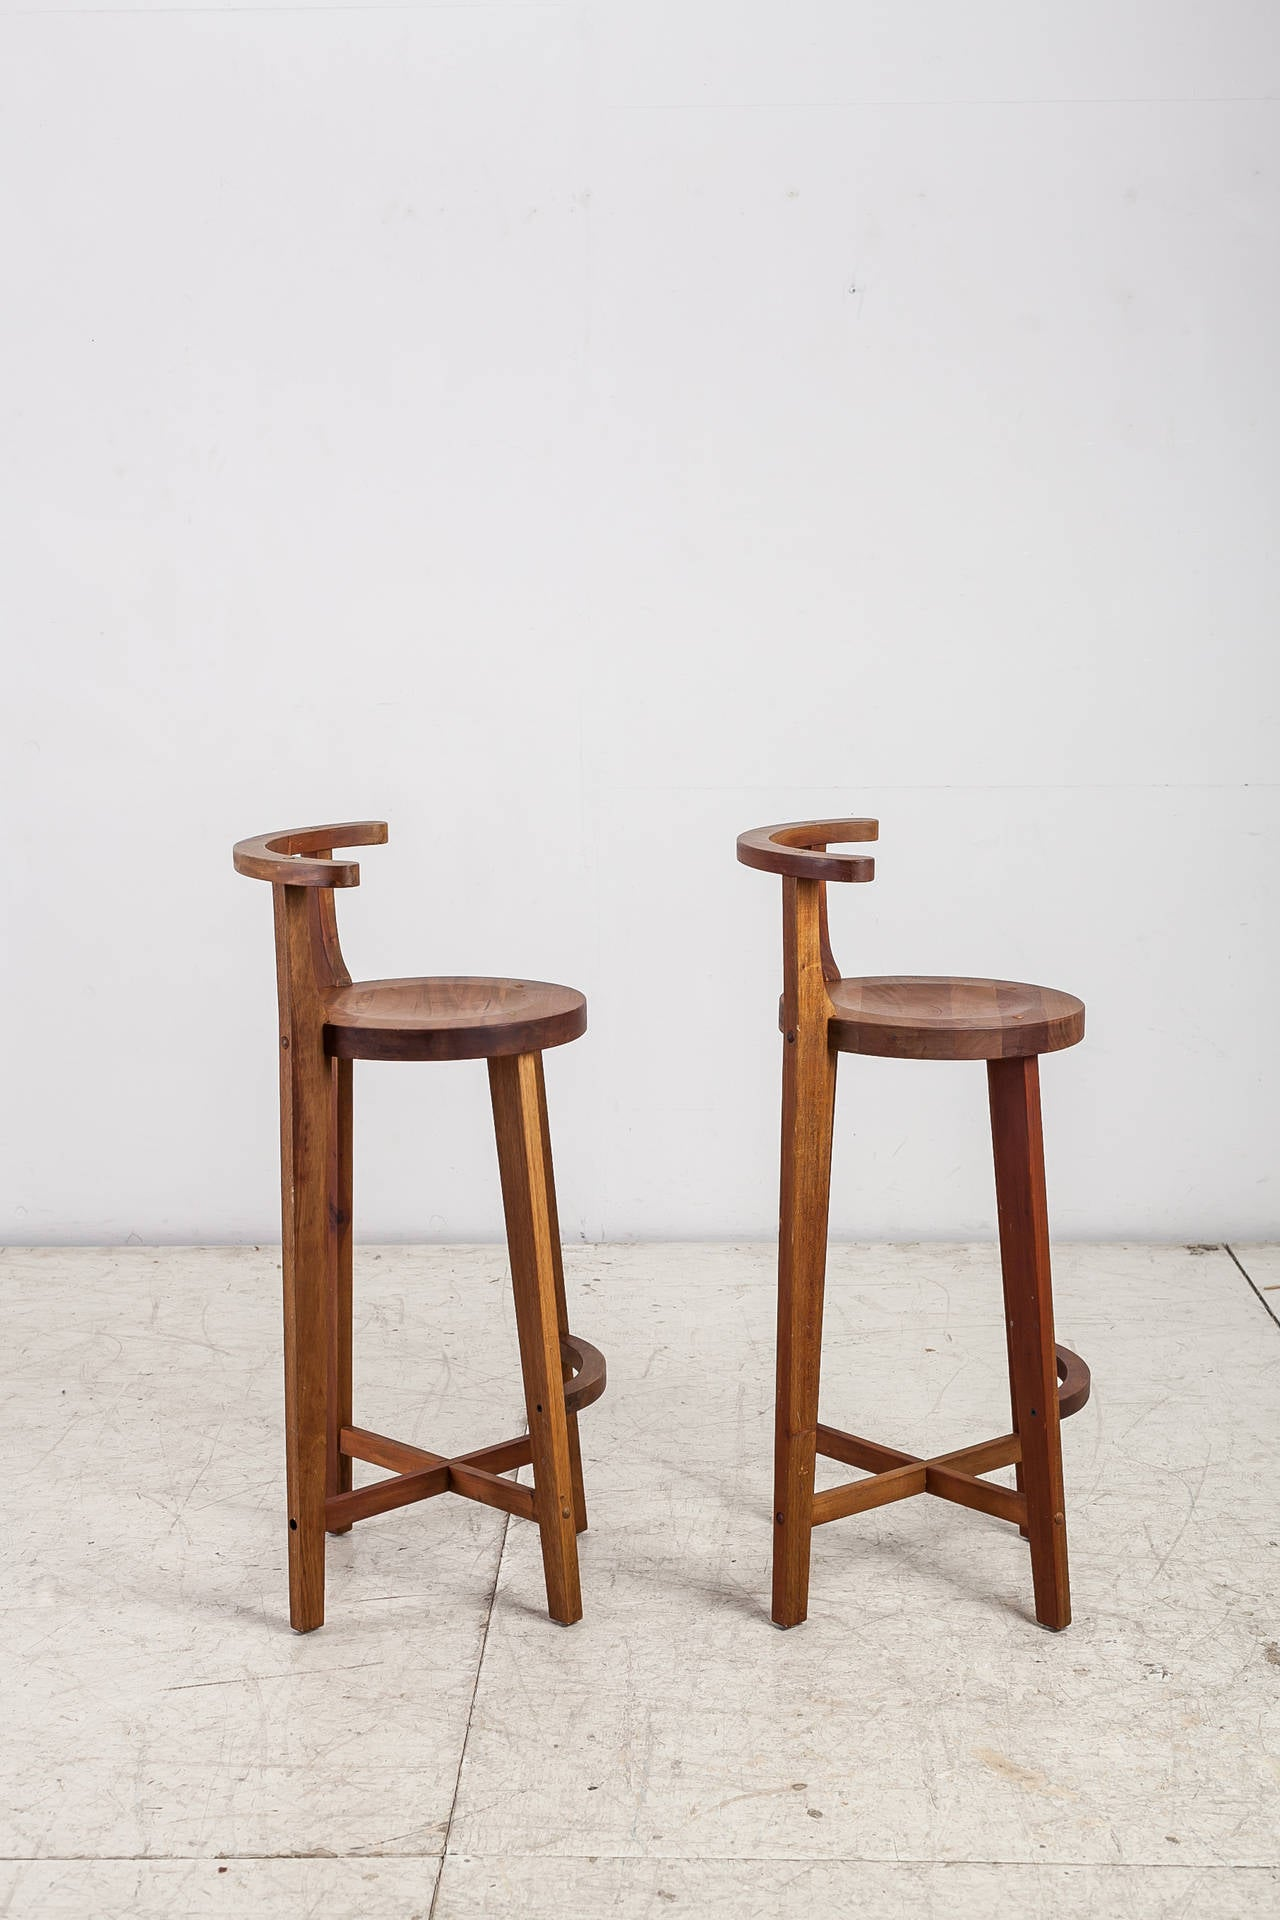 Marvelous photograph of Pair Studio crafted wooden bar stools with rounded back rests For Sale  with #492216 color and 1280x1920 pixels